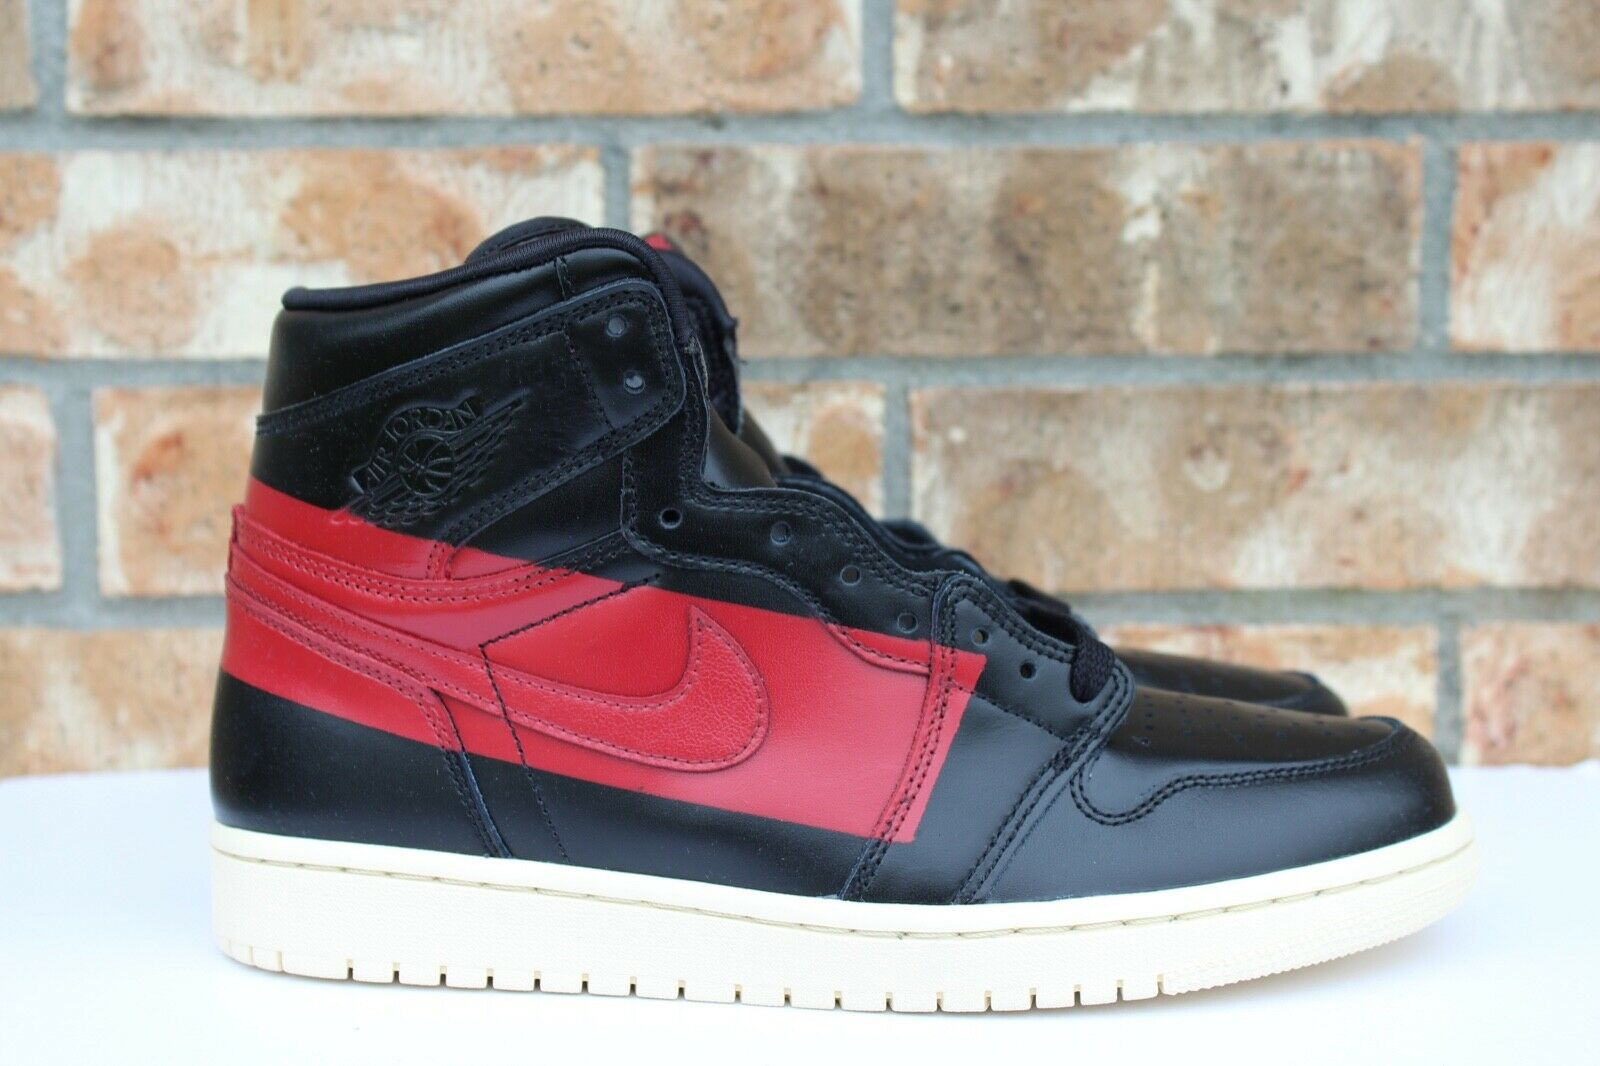 new arrival 4cfd6 3690b Men s Nike Air Jordan 1 High OG Defiant Couture Couture Couture Black Red  Size 9.5-